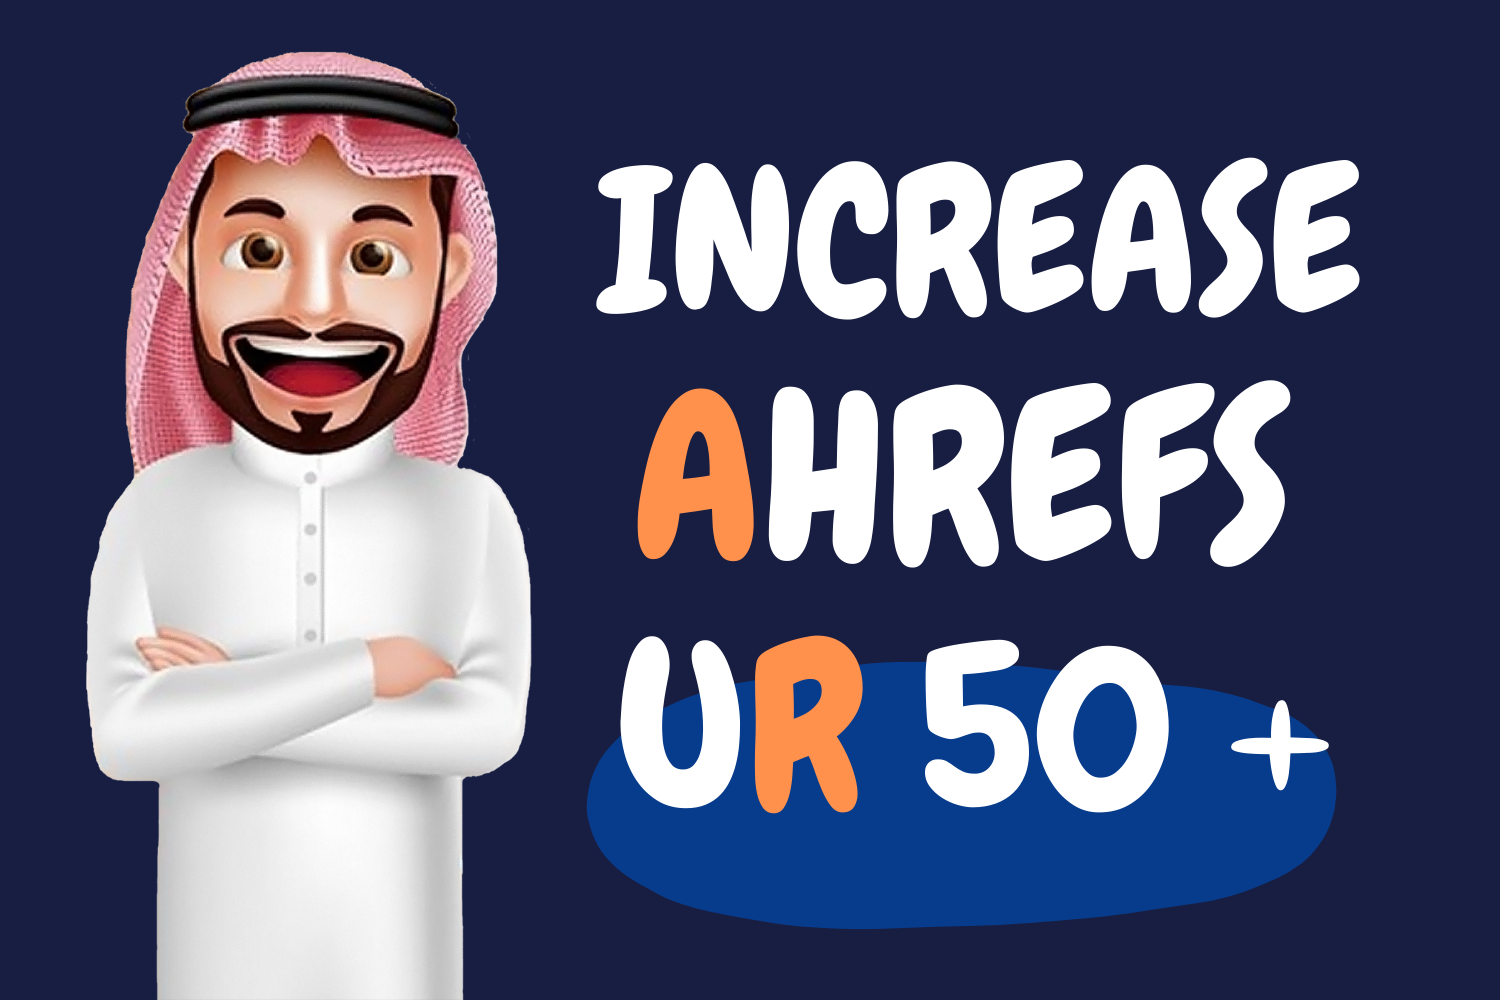 I Will Increase Ahrefs URL Rating 50 Plus